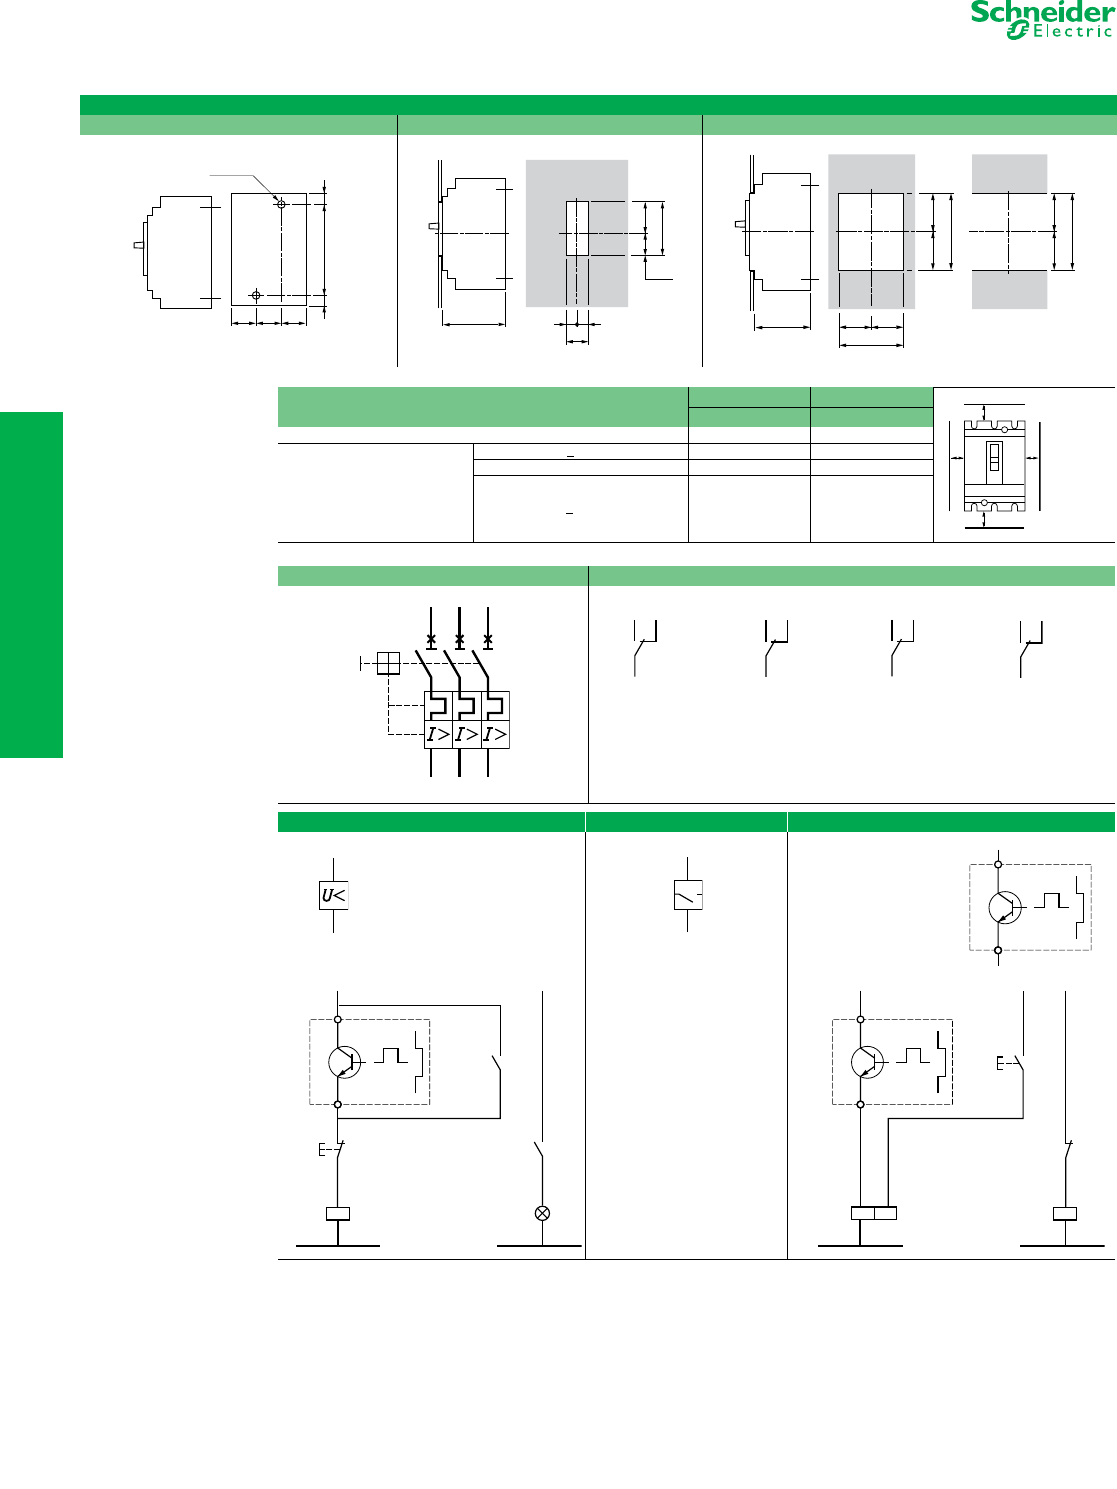 schneider lc1d25 wiring diagram Collection-electric 14-d